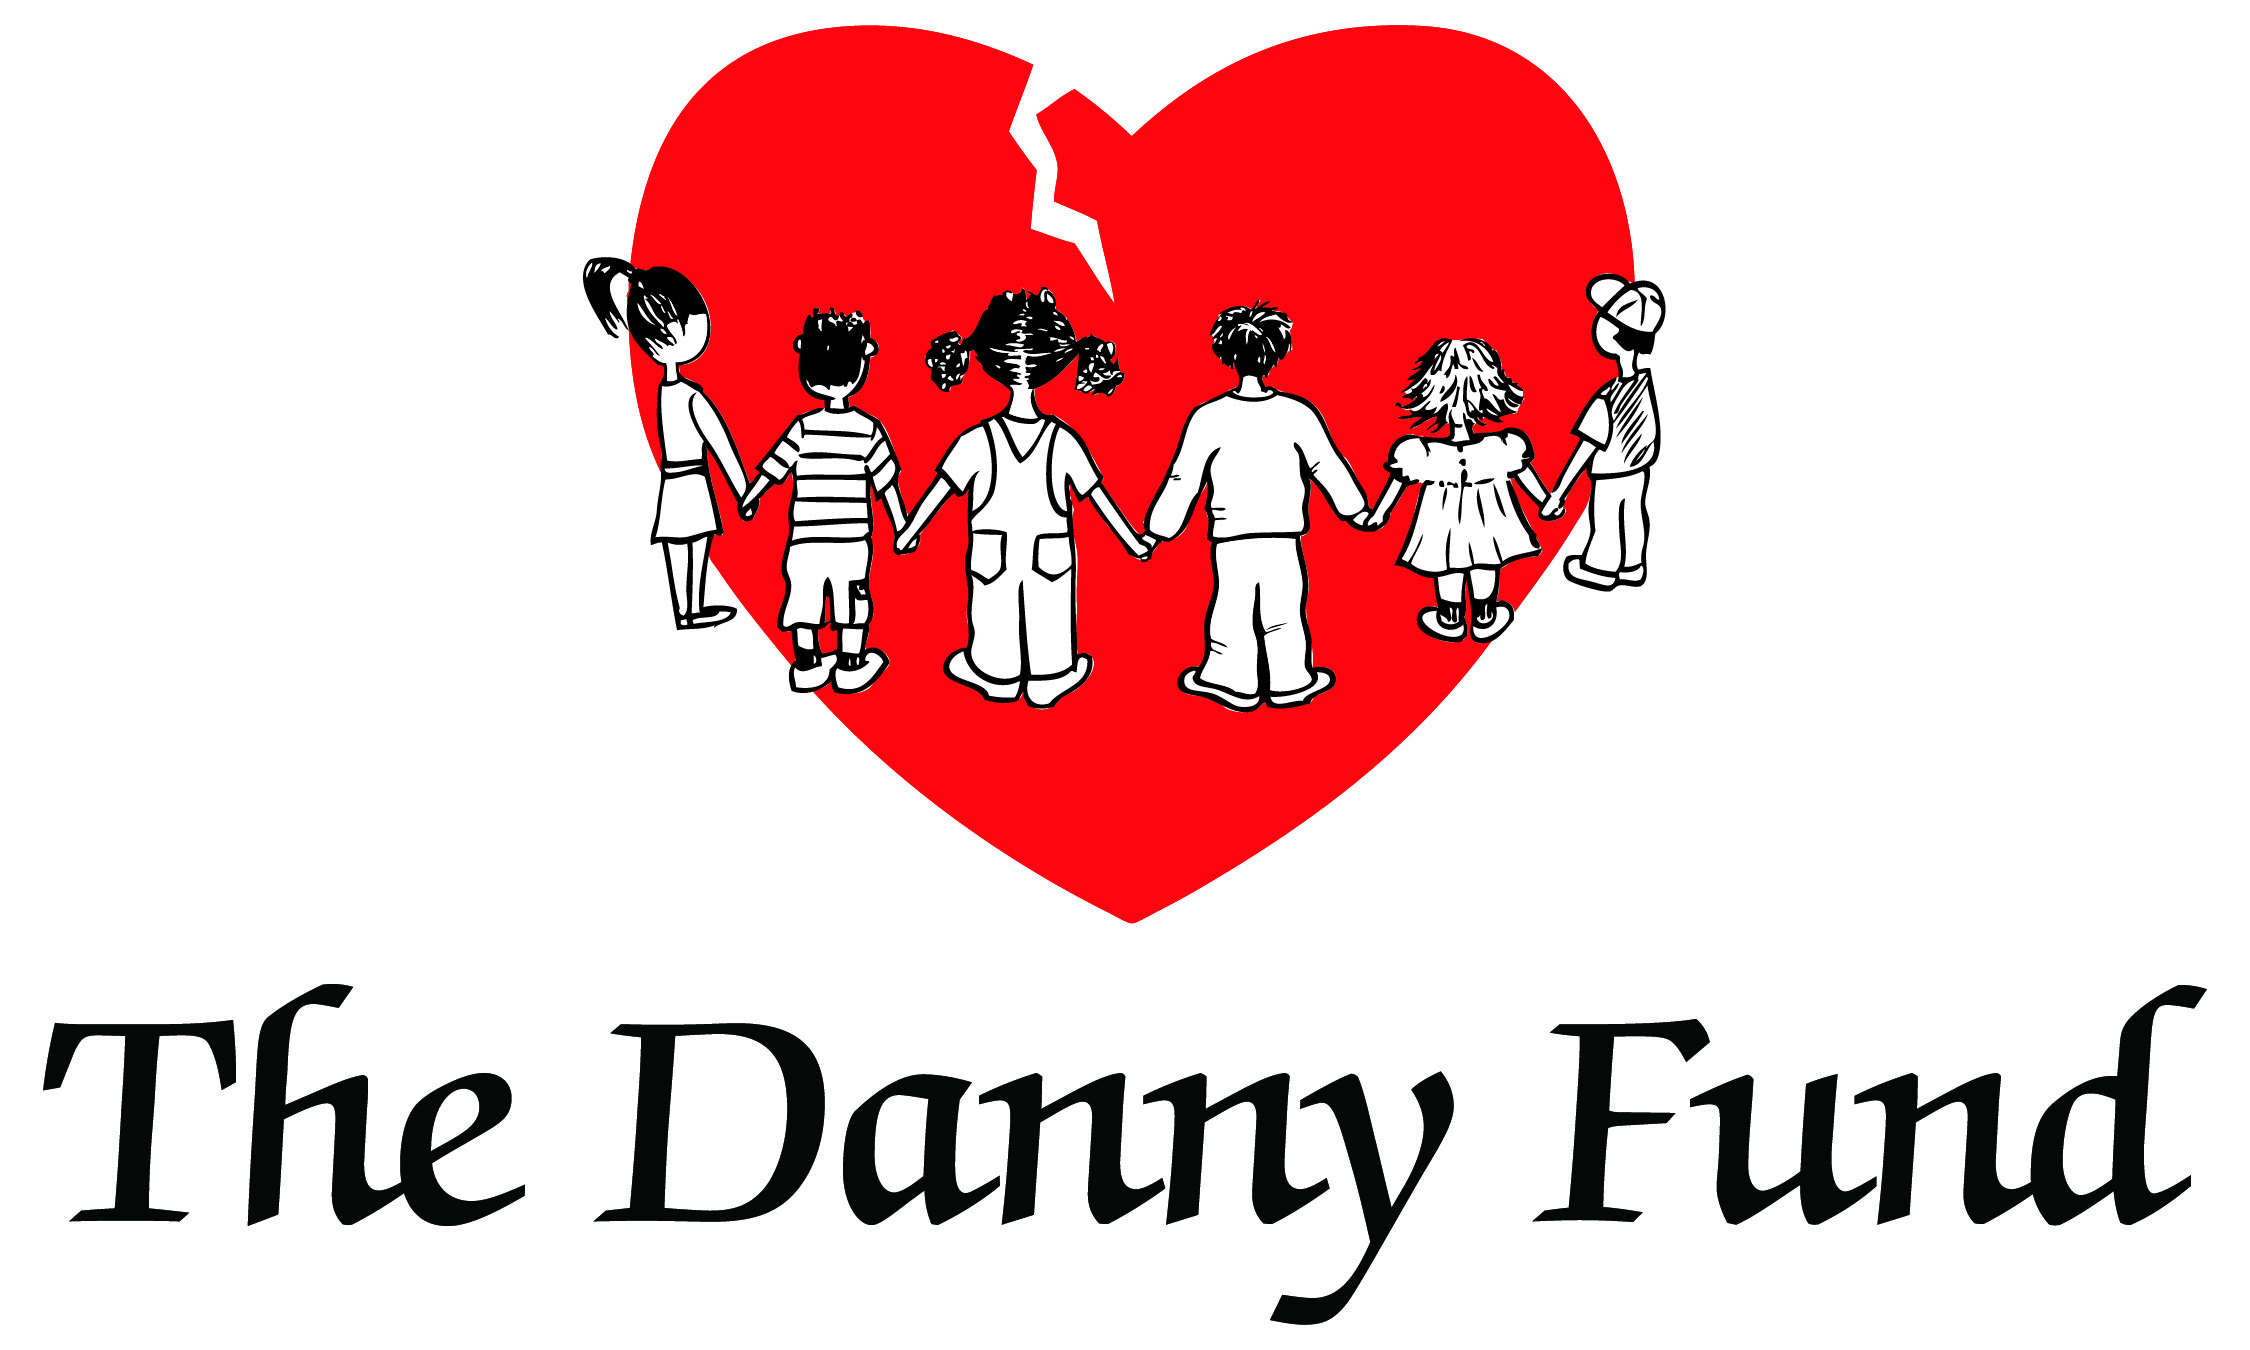 Danny Fund - Founded in 1993, the Danny Fund provides financial, emotional and advocacy support for the families of local children impacted by a catastrophic illness or injury. We are 100% volunteer, Westchester-based non-profit organization.